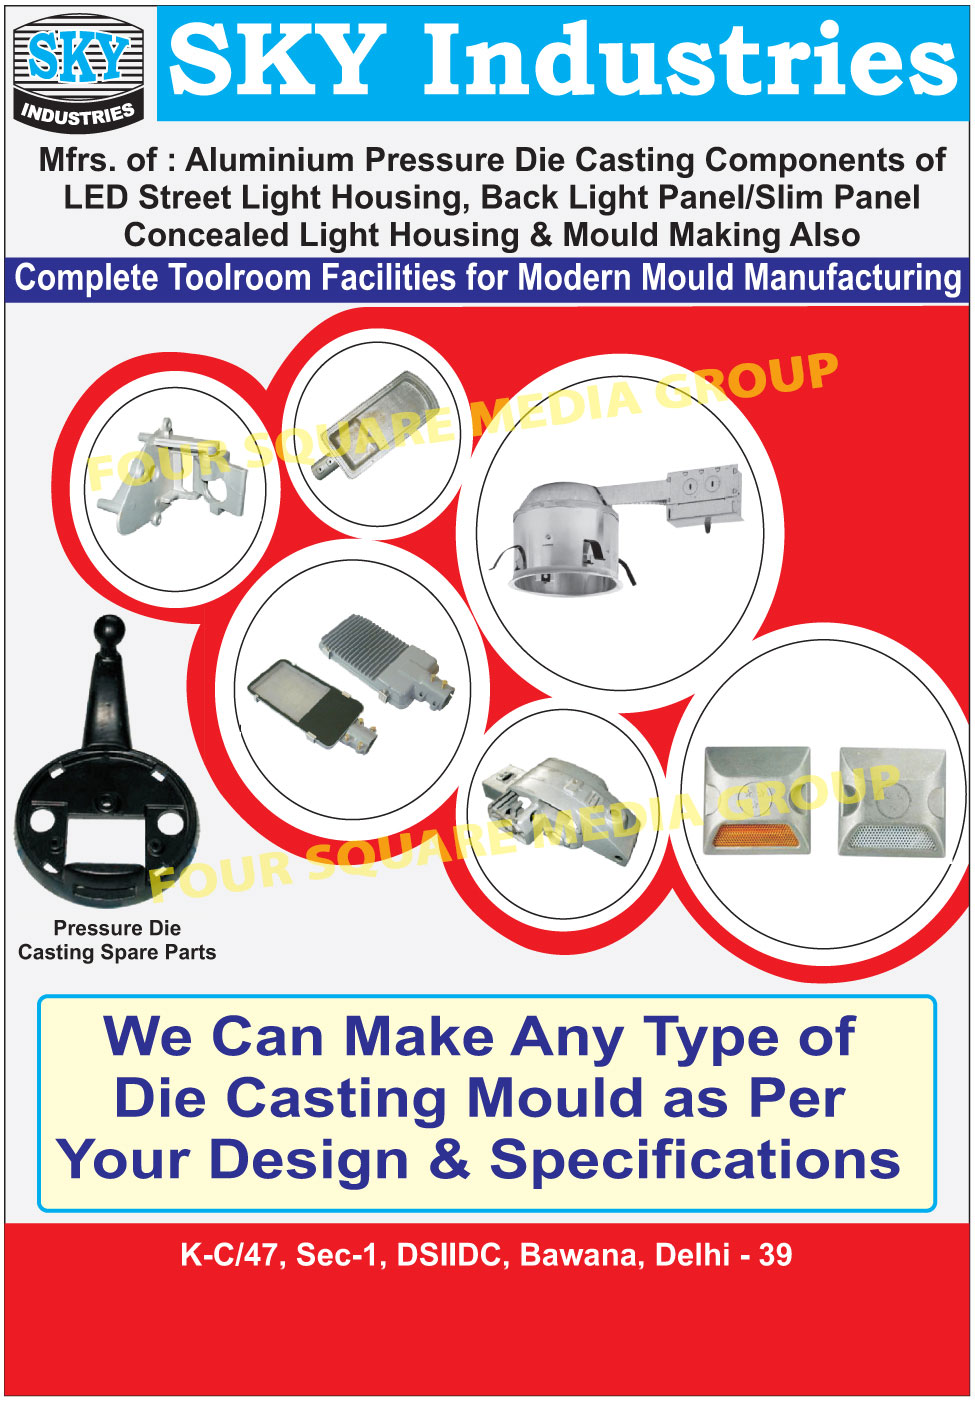 Led Light Housing Aluminium Pressure Die Casting Components, Led Street Light Housing Aluminium Pressure Die Casting Components, Led Back Light Panel Housing Aluminium Pressure Die Casting Components, ed Back Slim Panel Light Housing Aluminium Pressure Die Casting Components, Concealed Light Housing Aluminium Pressure Die Casting Components, Led Light Housing Moulds,  Led Street Light Housing Moulds, Led Back Light Panel Housing Moulds, Led Back Slim Panel Light Housing Concealed Light Housing Moulds, Led Light Housing  Molds, Led Street Light Housing Molds, Led Back Panel Light Housing Molds, Led Back Light Slim Panel Light Housing Molds, Concealed Light Housing Molds, Pressure Die Casting Spare Parts